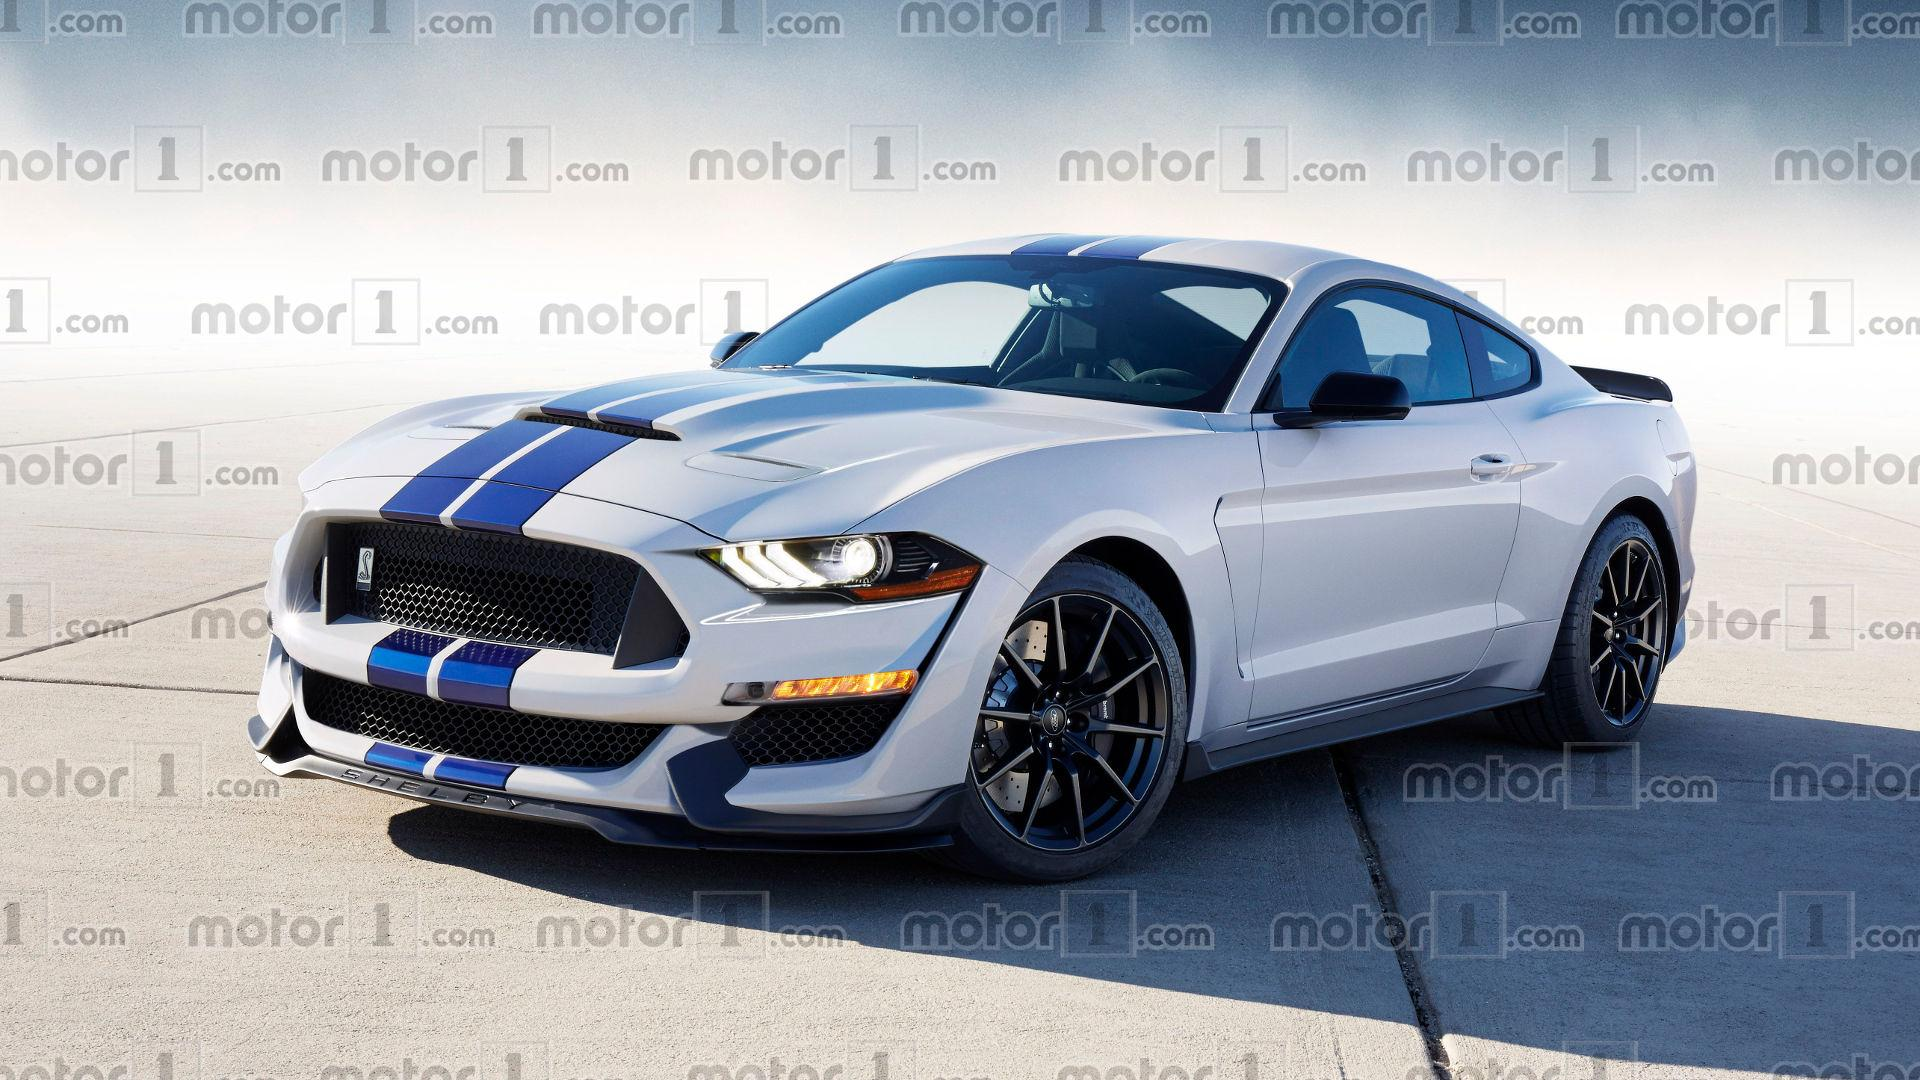 2019 Ford Mustang Shelby Gt500 Looks Aggressive In New